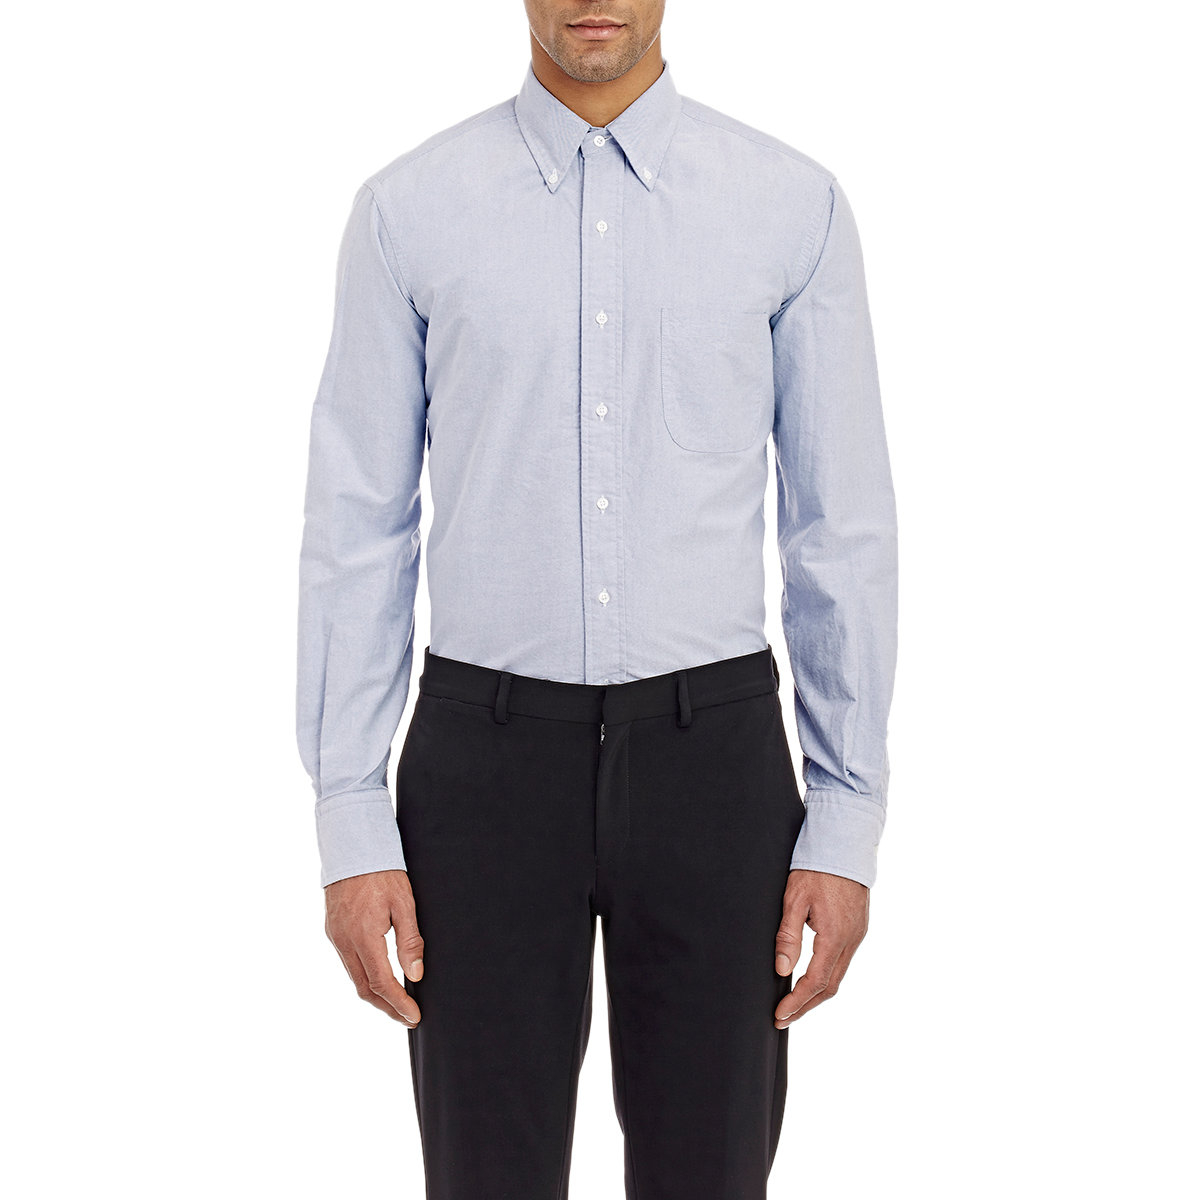 thom browne oxford cloth shirt in blue for men lyst